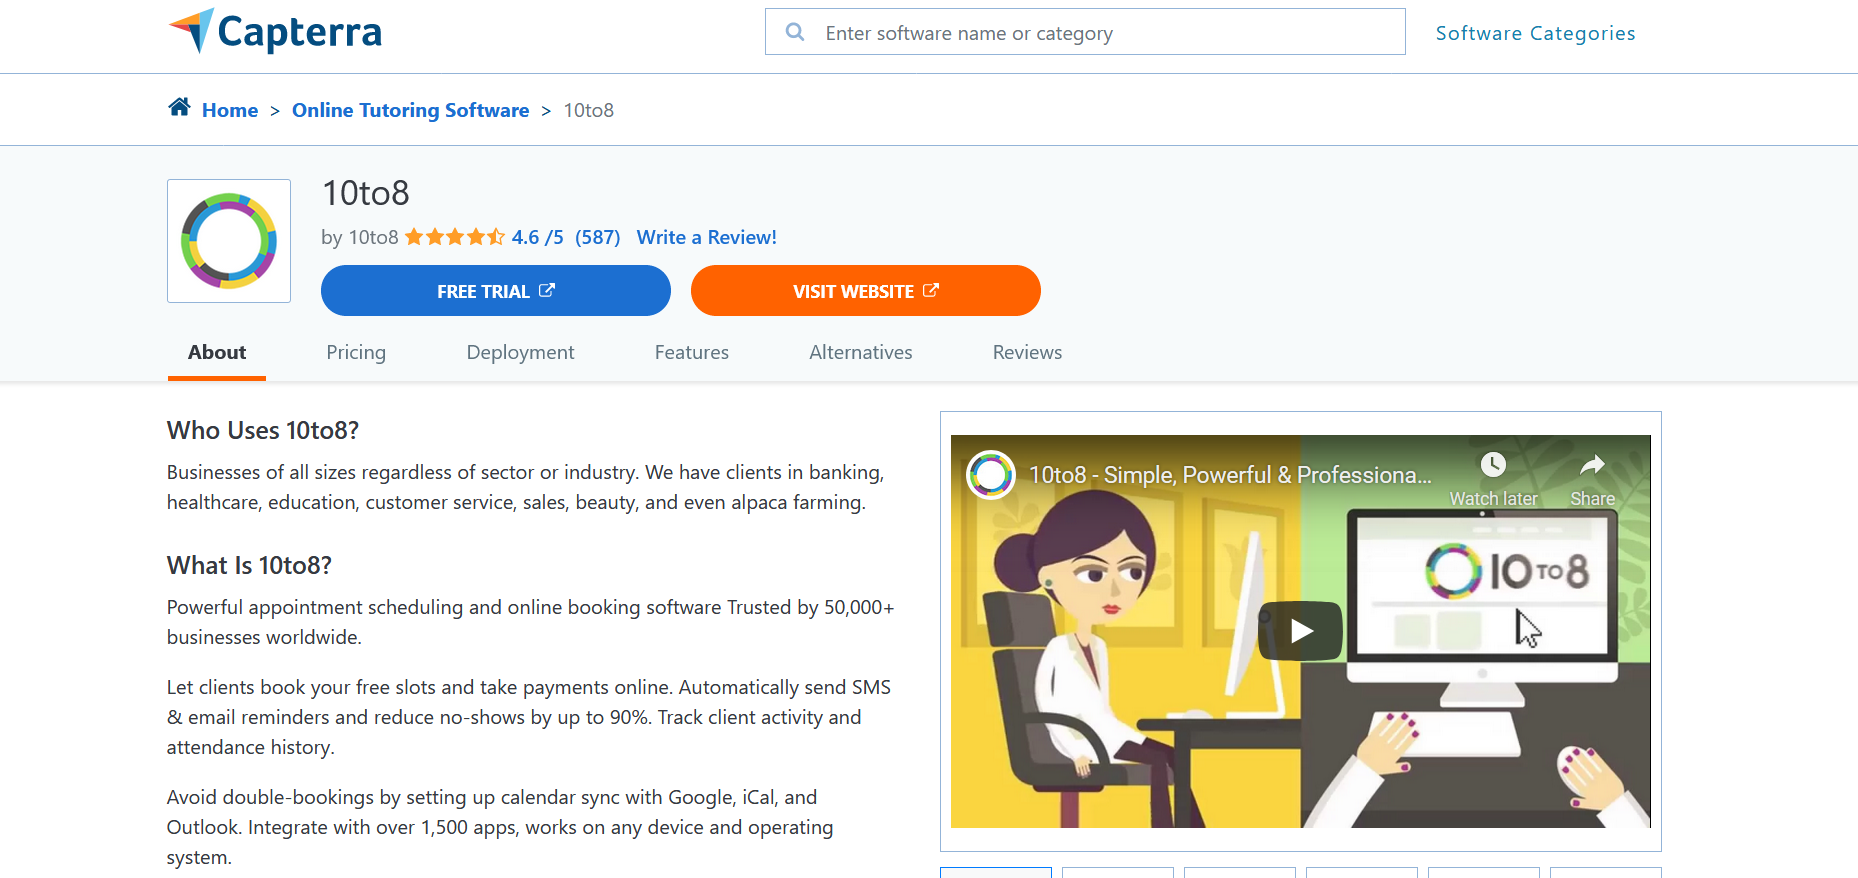 Capterra is one of the best review platforms for b2b and b2c companies